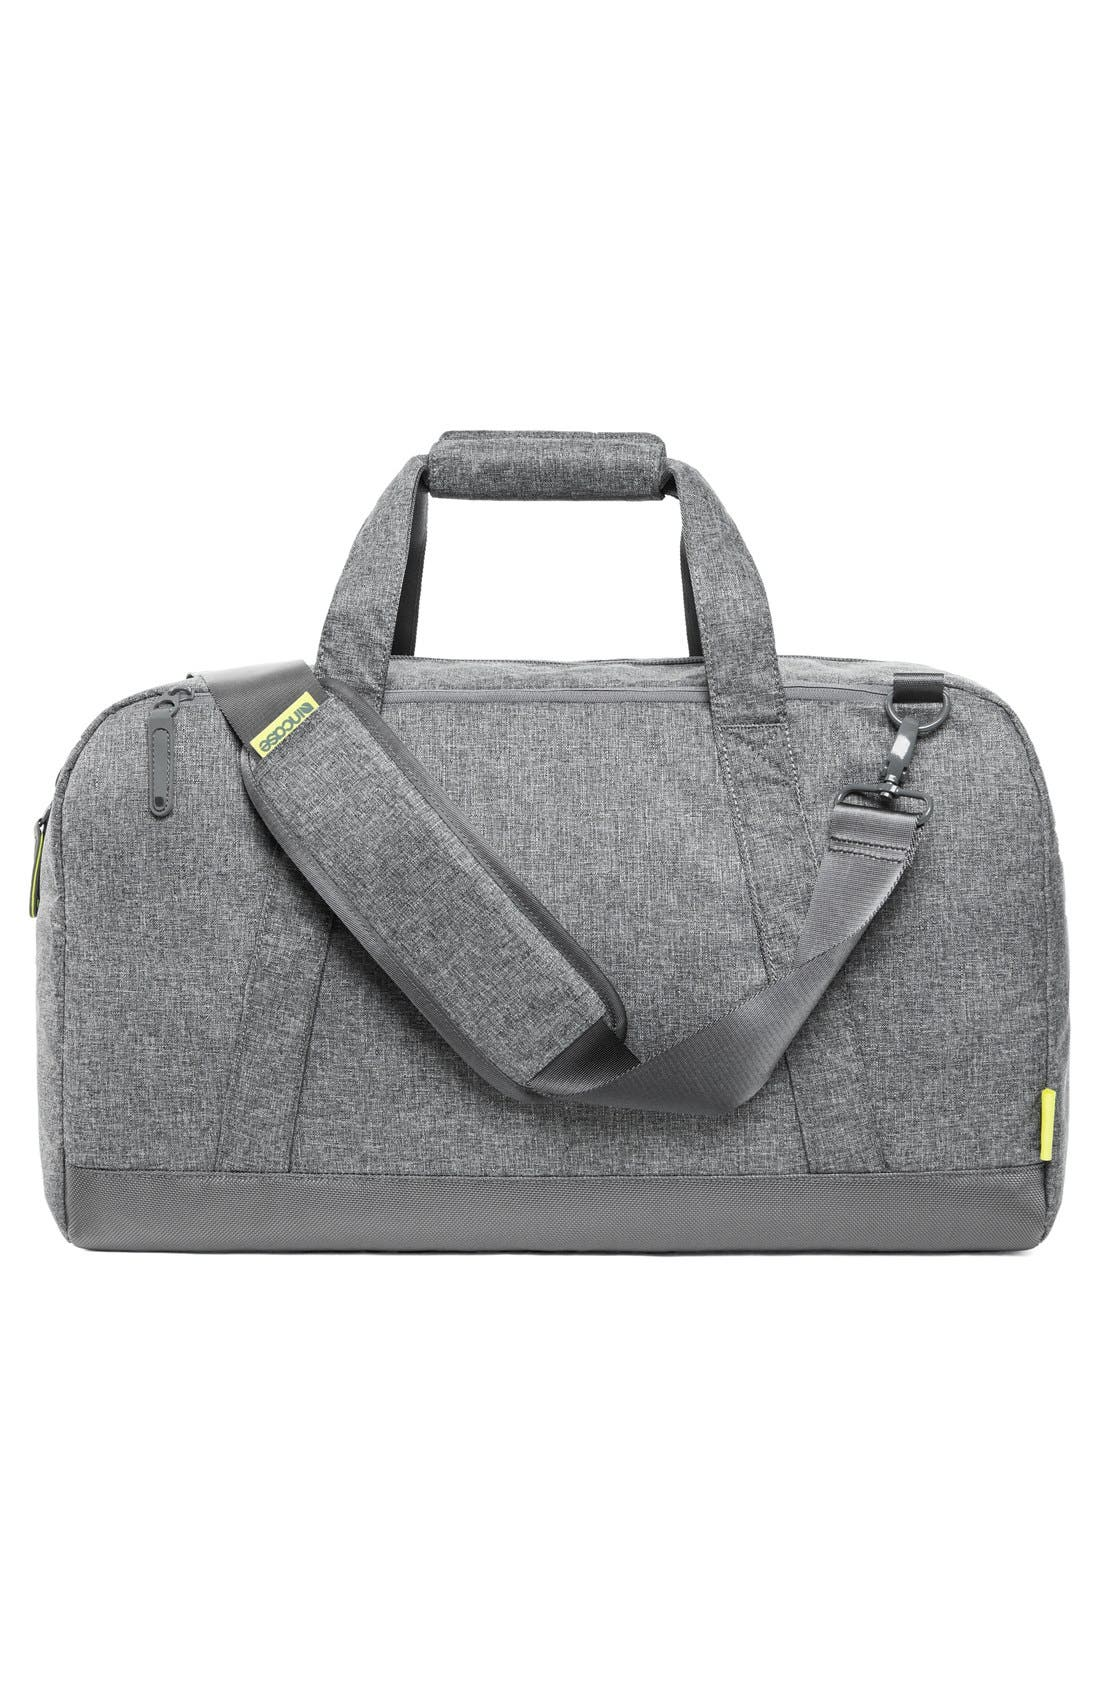 EO Duffel Bag,                             Alternate thumbnail 2, color,                             Heather Grey